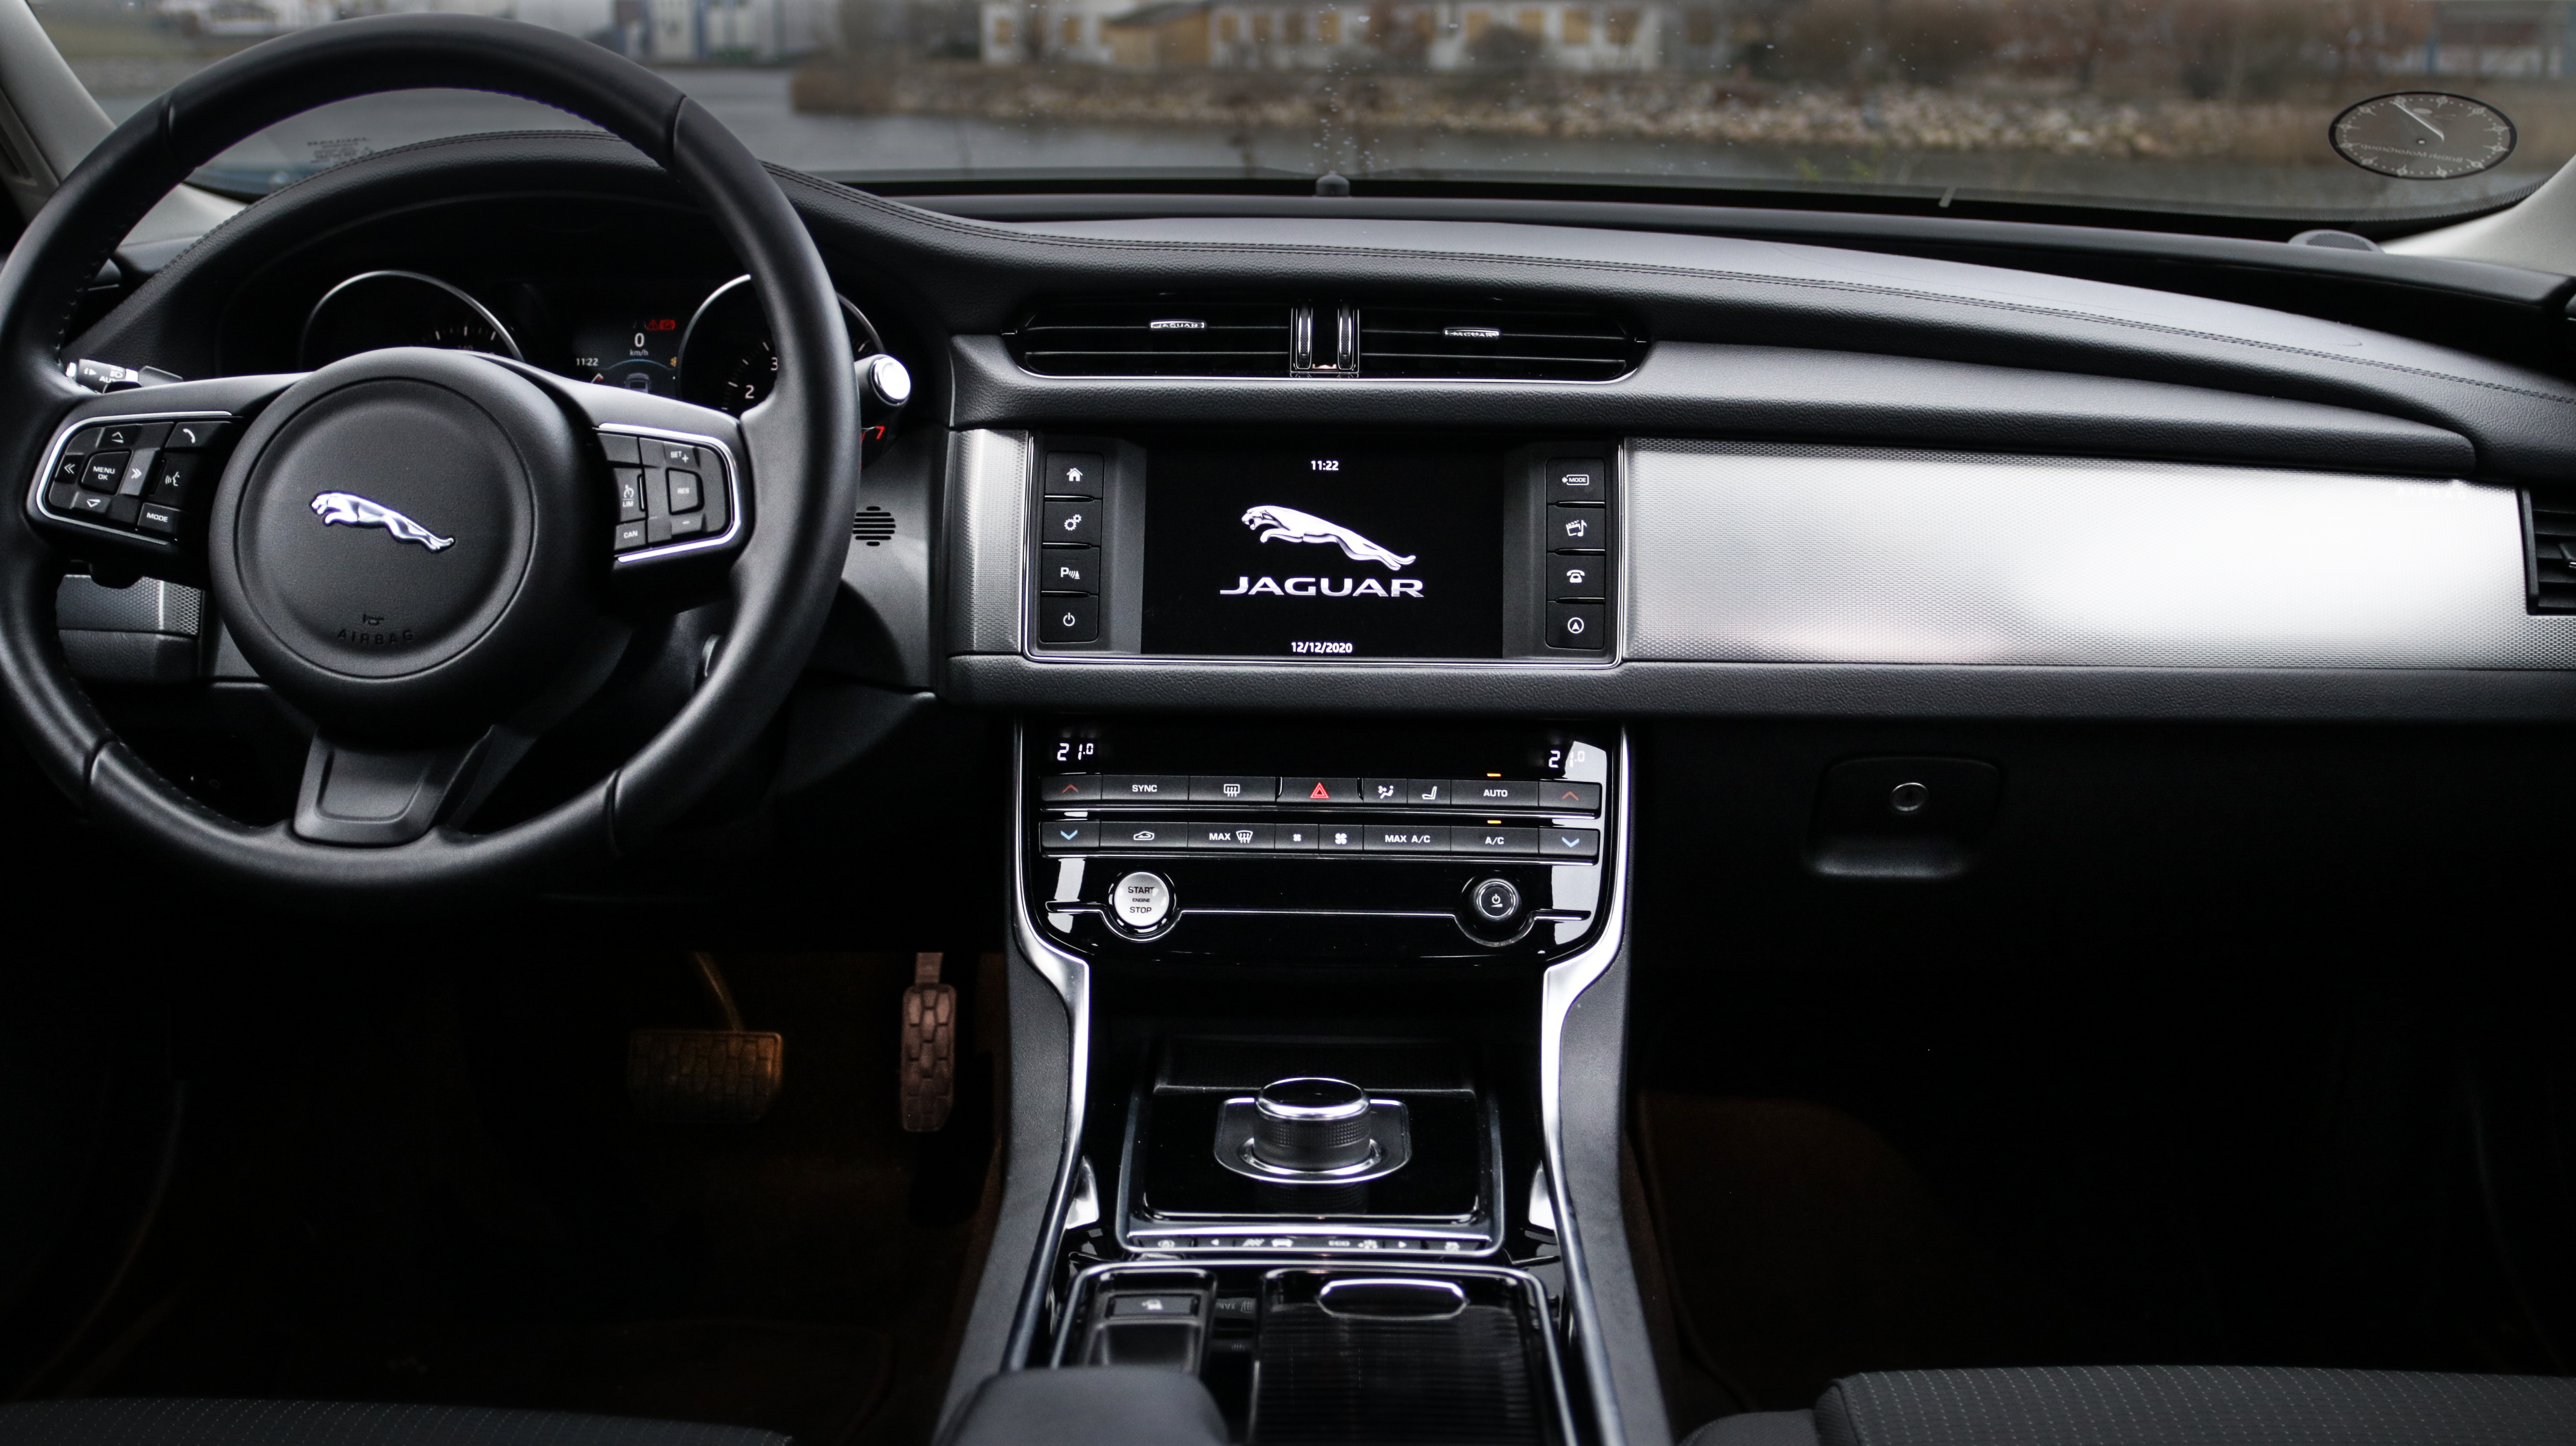 Jaguar Experiences Loss of Power With Engine Fault Lamp Illuminated.